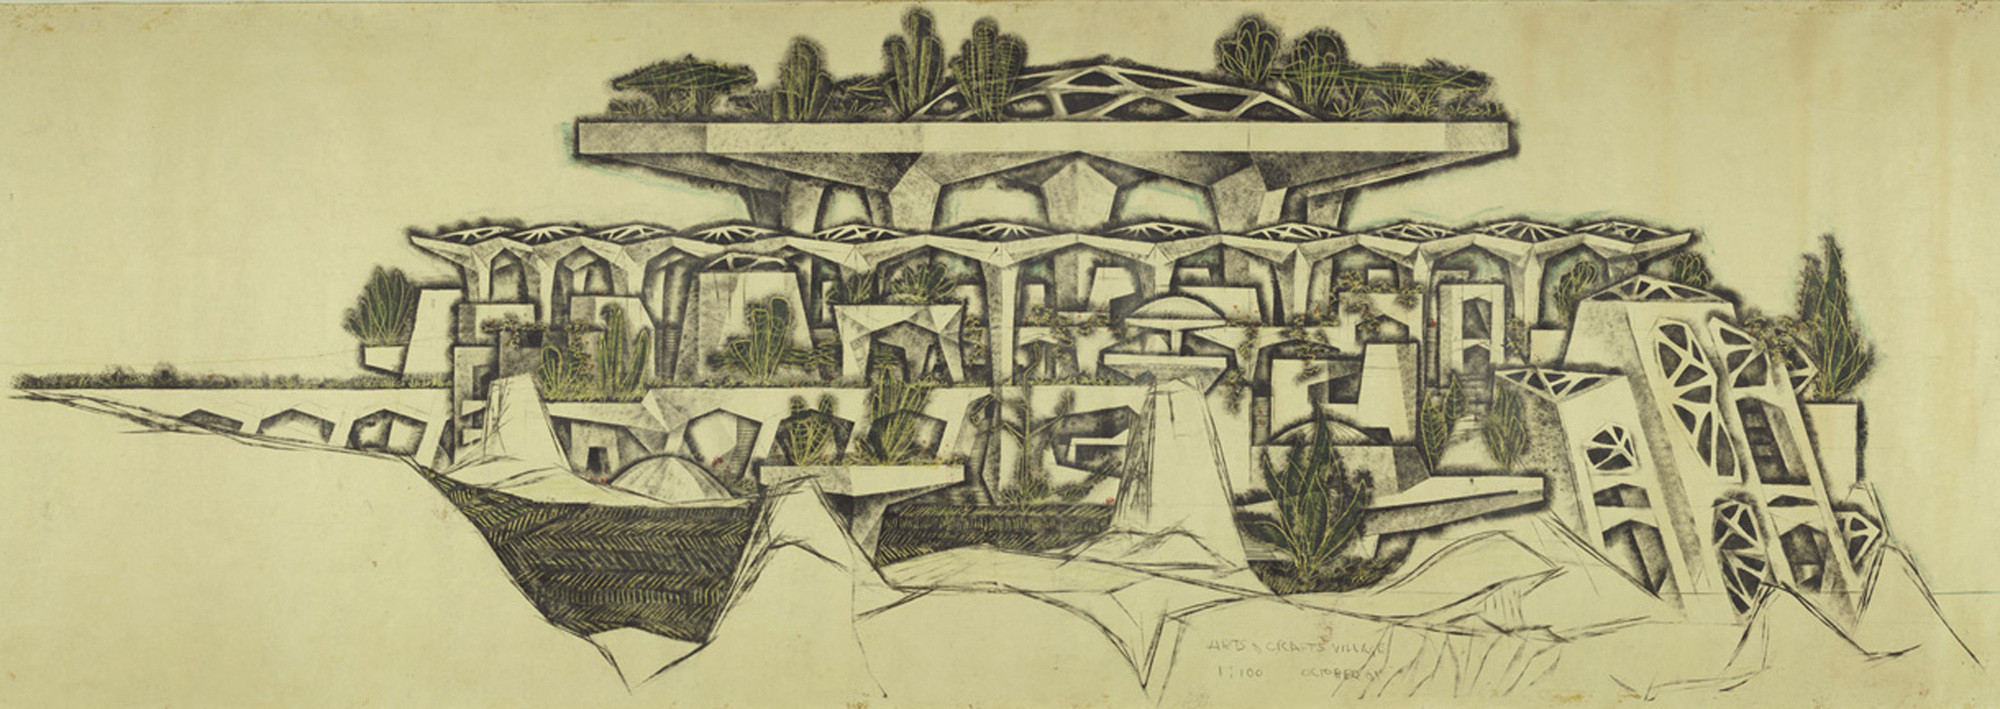 Remembering Paolo Soleri 1919-2013, Paolo Soleri, detail, Mesa City Market (Arts and Crafts), 1961. Pencil, Charcoal, pastel on paper. Collection of the Cosanti Foundation. © Paolo Soleri. Photo: Cosanti Foundation/Soleri Archives/David DeGomez